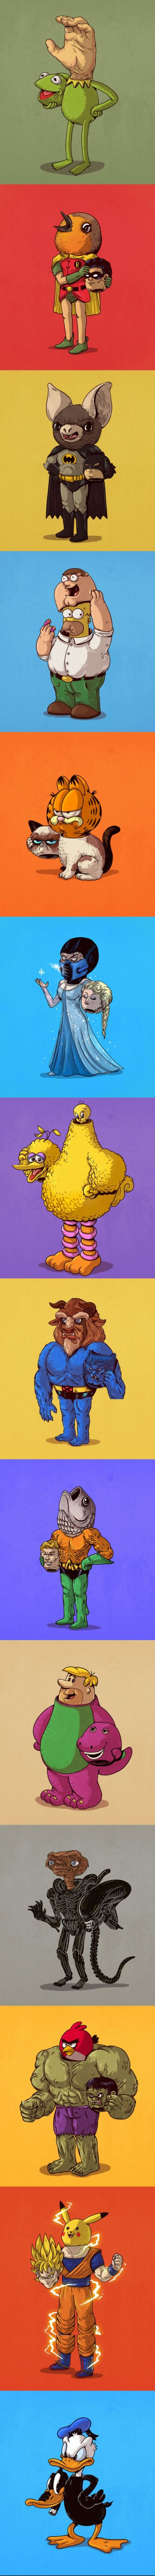 Iconic Characters Unmasked (By Alex Solis)